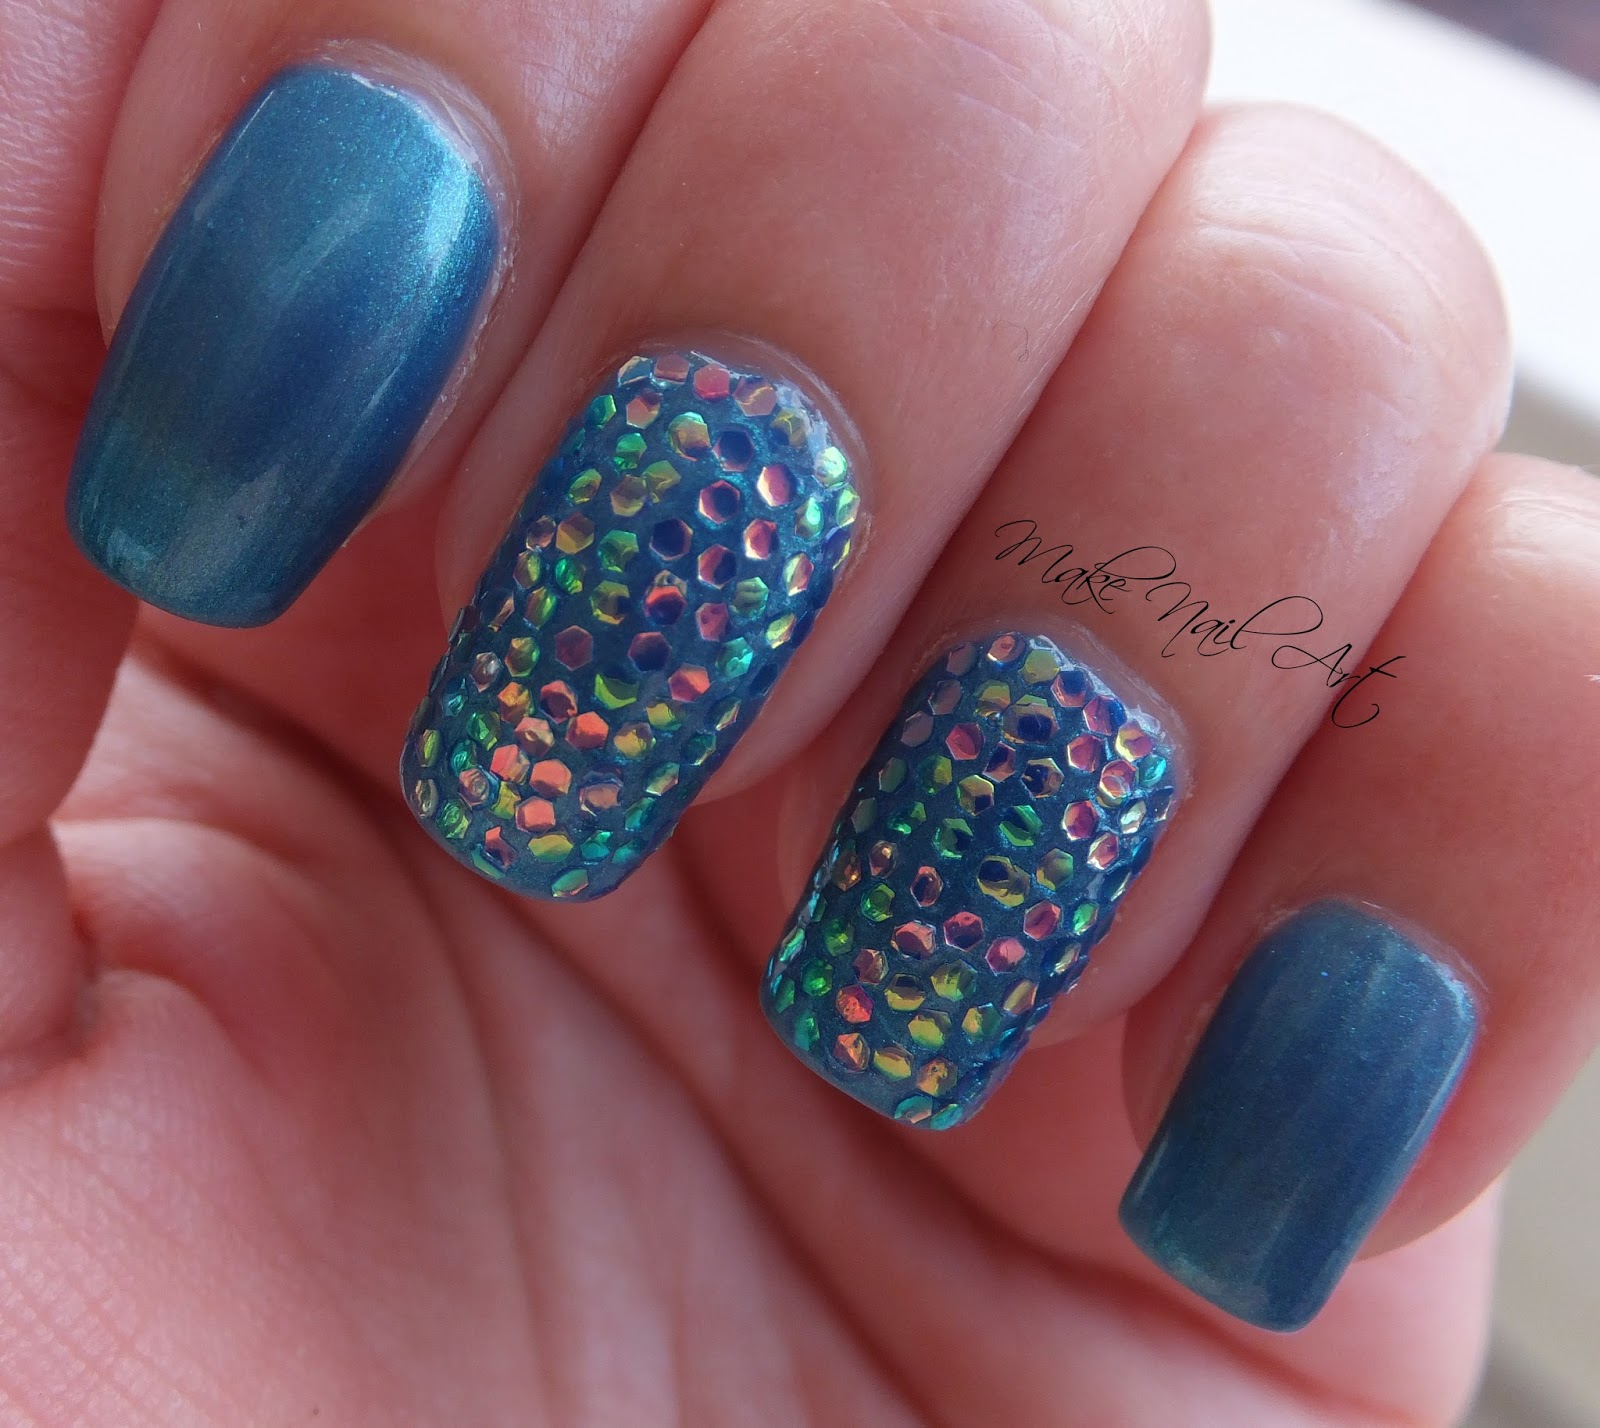 Blue Nails With Glitter On The Ring Finger Pinpoint Properties